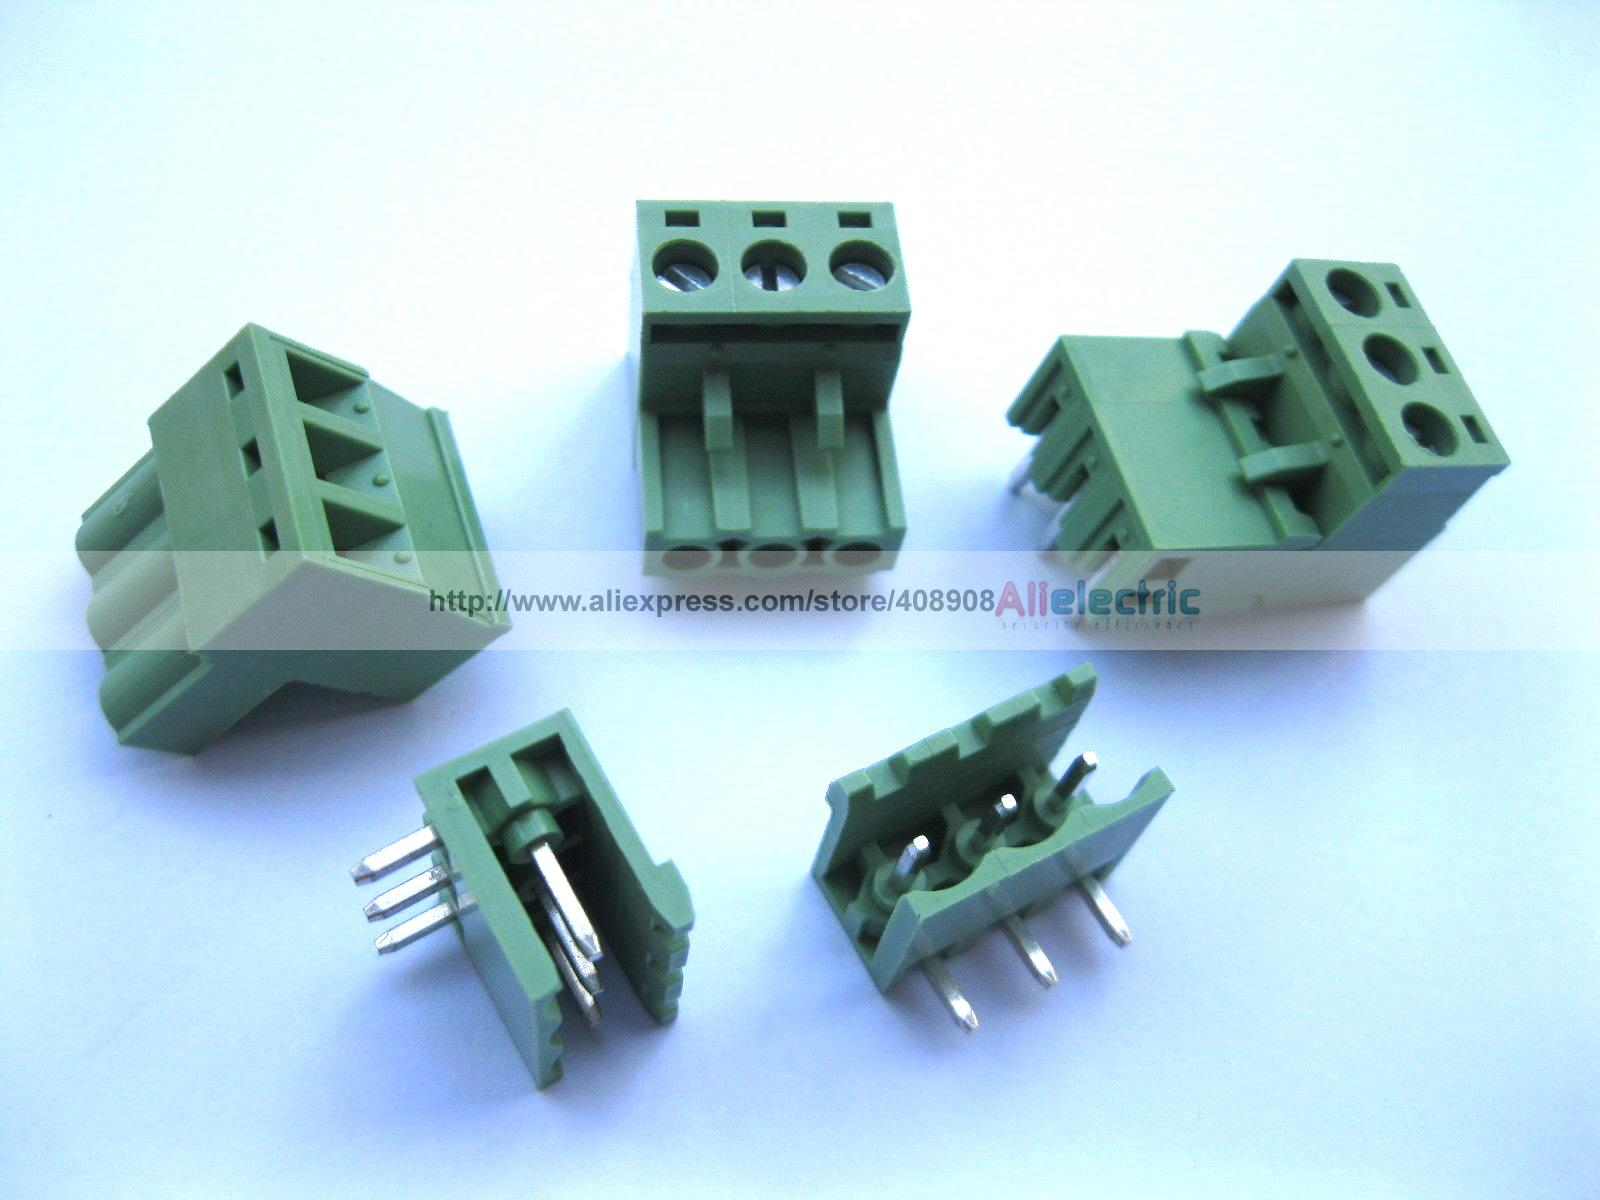 цена на 50 Pcs 5.08mm Angle 3 Pin Screw Terminal Block Connector Pluggable Type Green